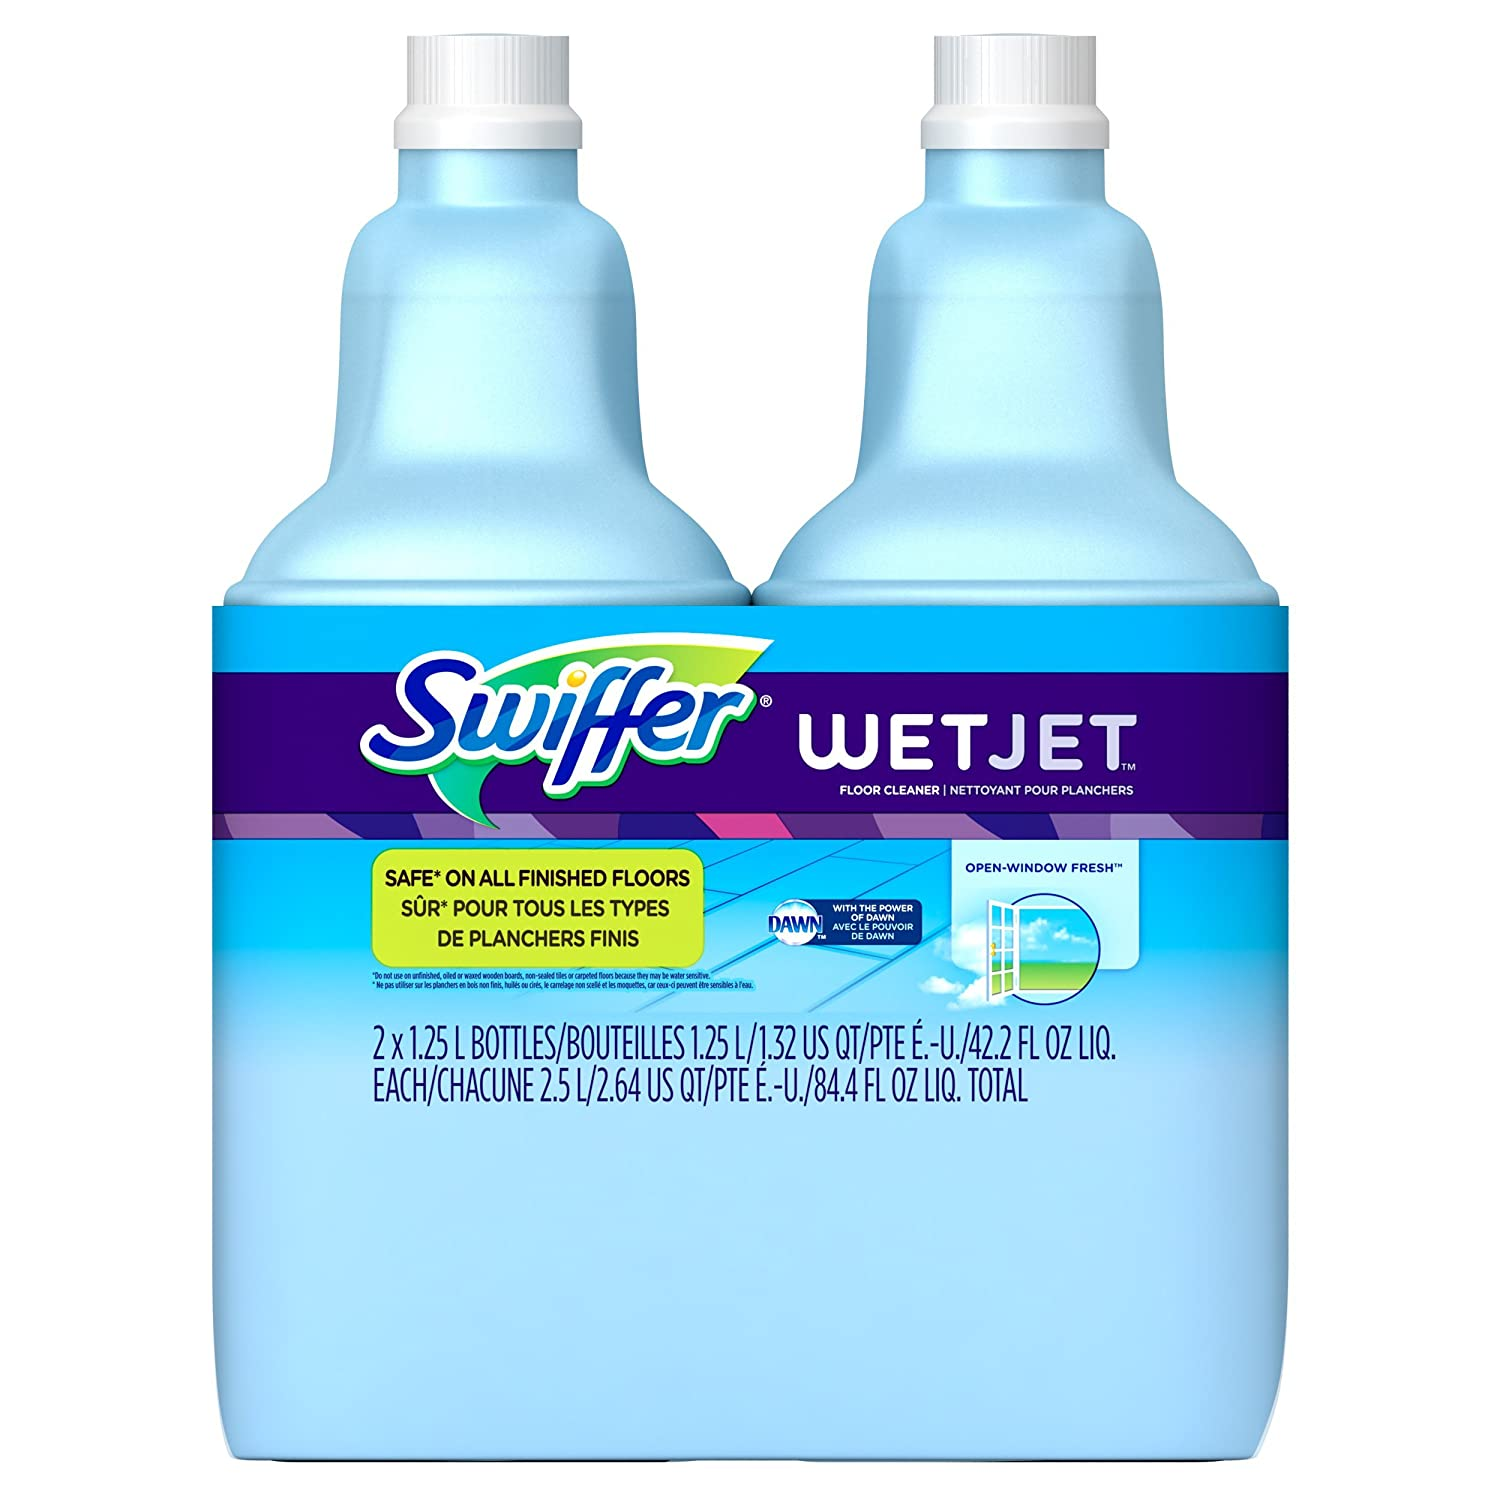 Swiffer WetJet Multi-Purpose Floor and Hardwood Cleaner Solution Refill